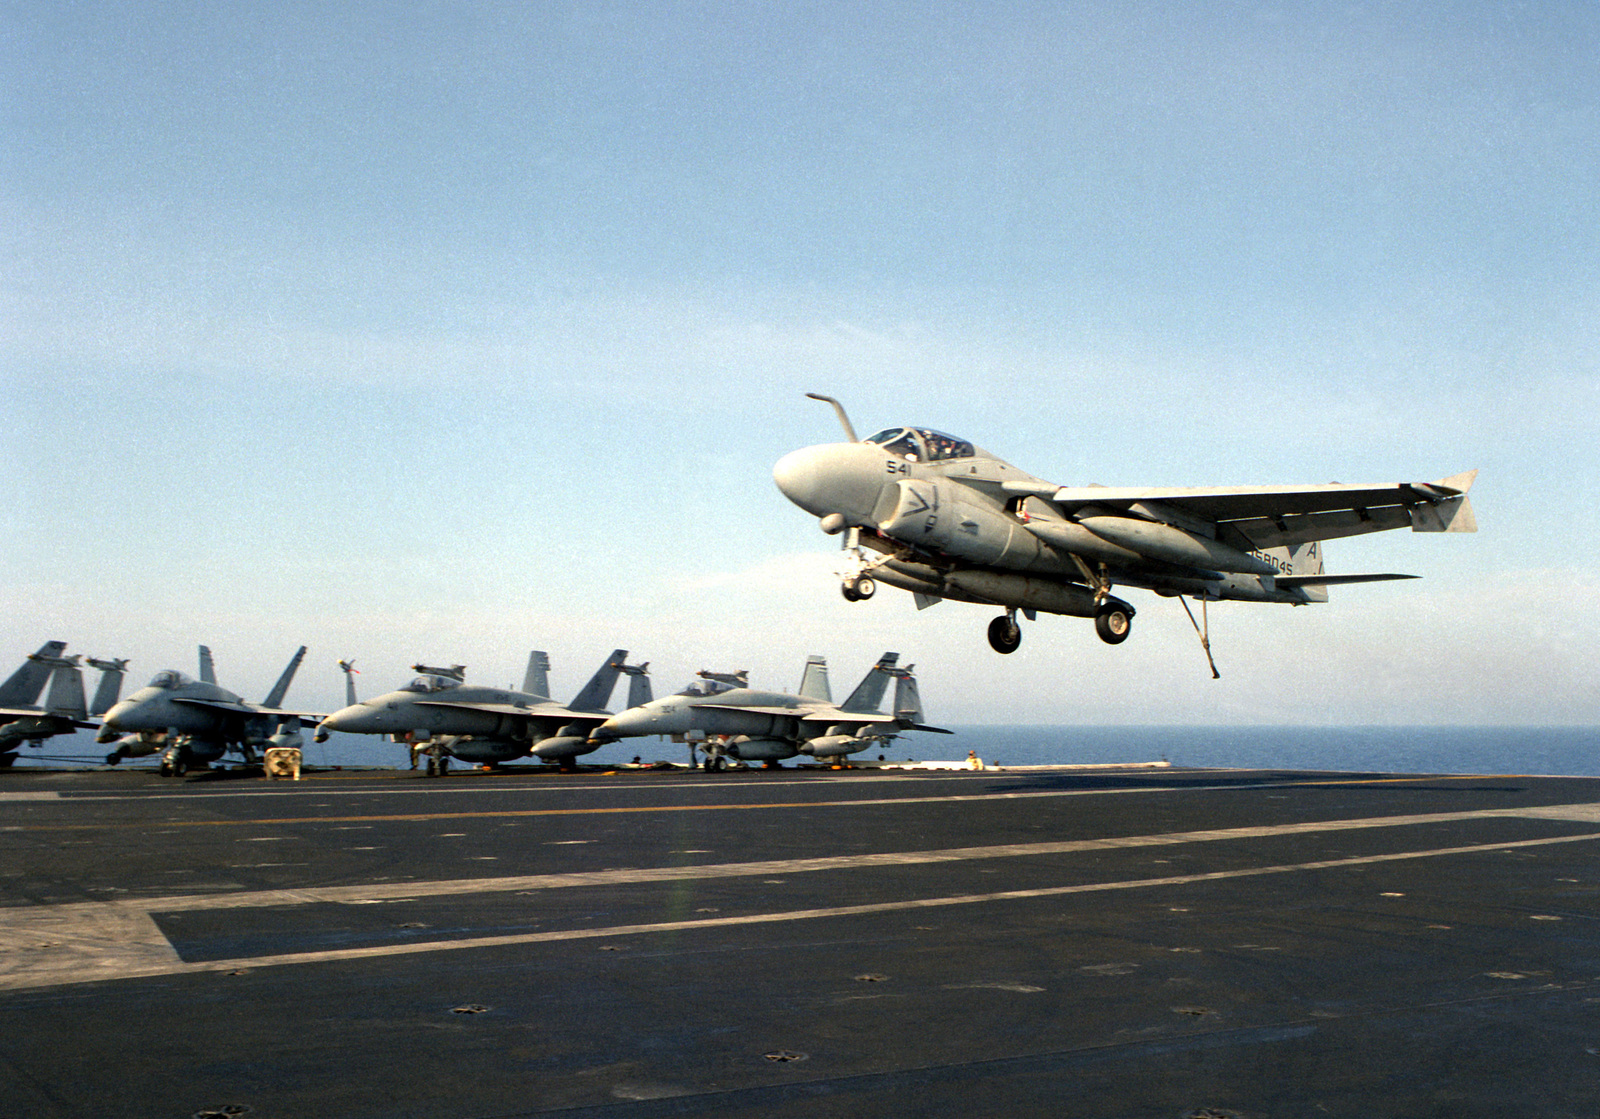 An Attack Squadron 36 (VA-36) A-6E Intruder aircraft comes in for an arrested landing on the flight deck of the nuclear-powered aircraft carrier USS THEODORE ROOSEVELT (CVN-71). The ROOSEVELT is on station in the eastern Mediterranean to support Operation Provide Comfort, a multinational effort to aid Kurdish refugees in southern Turkey and northern Iraq.